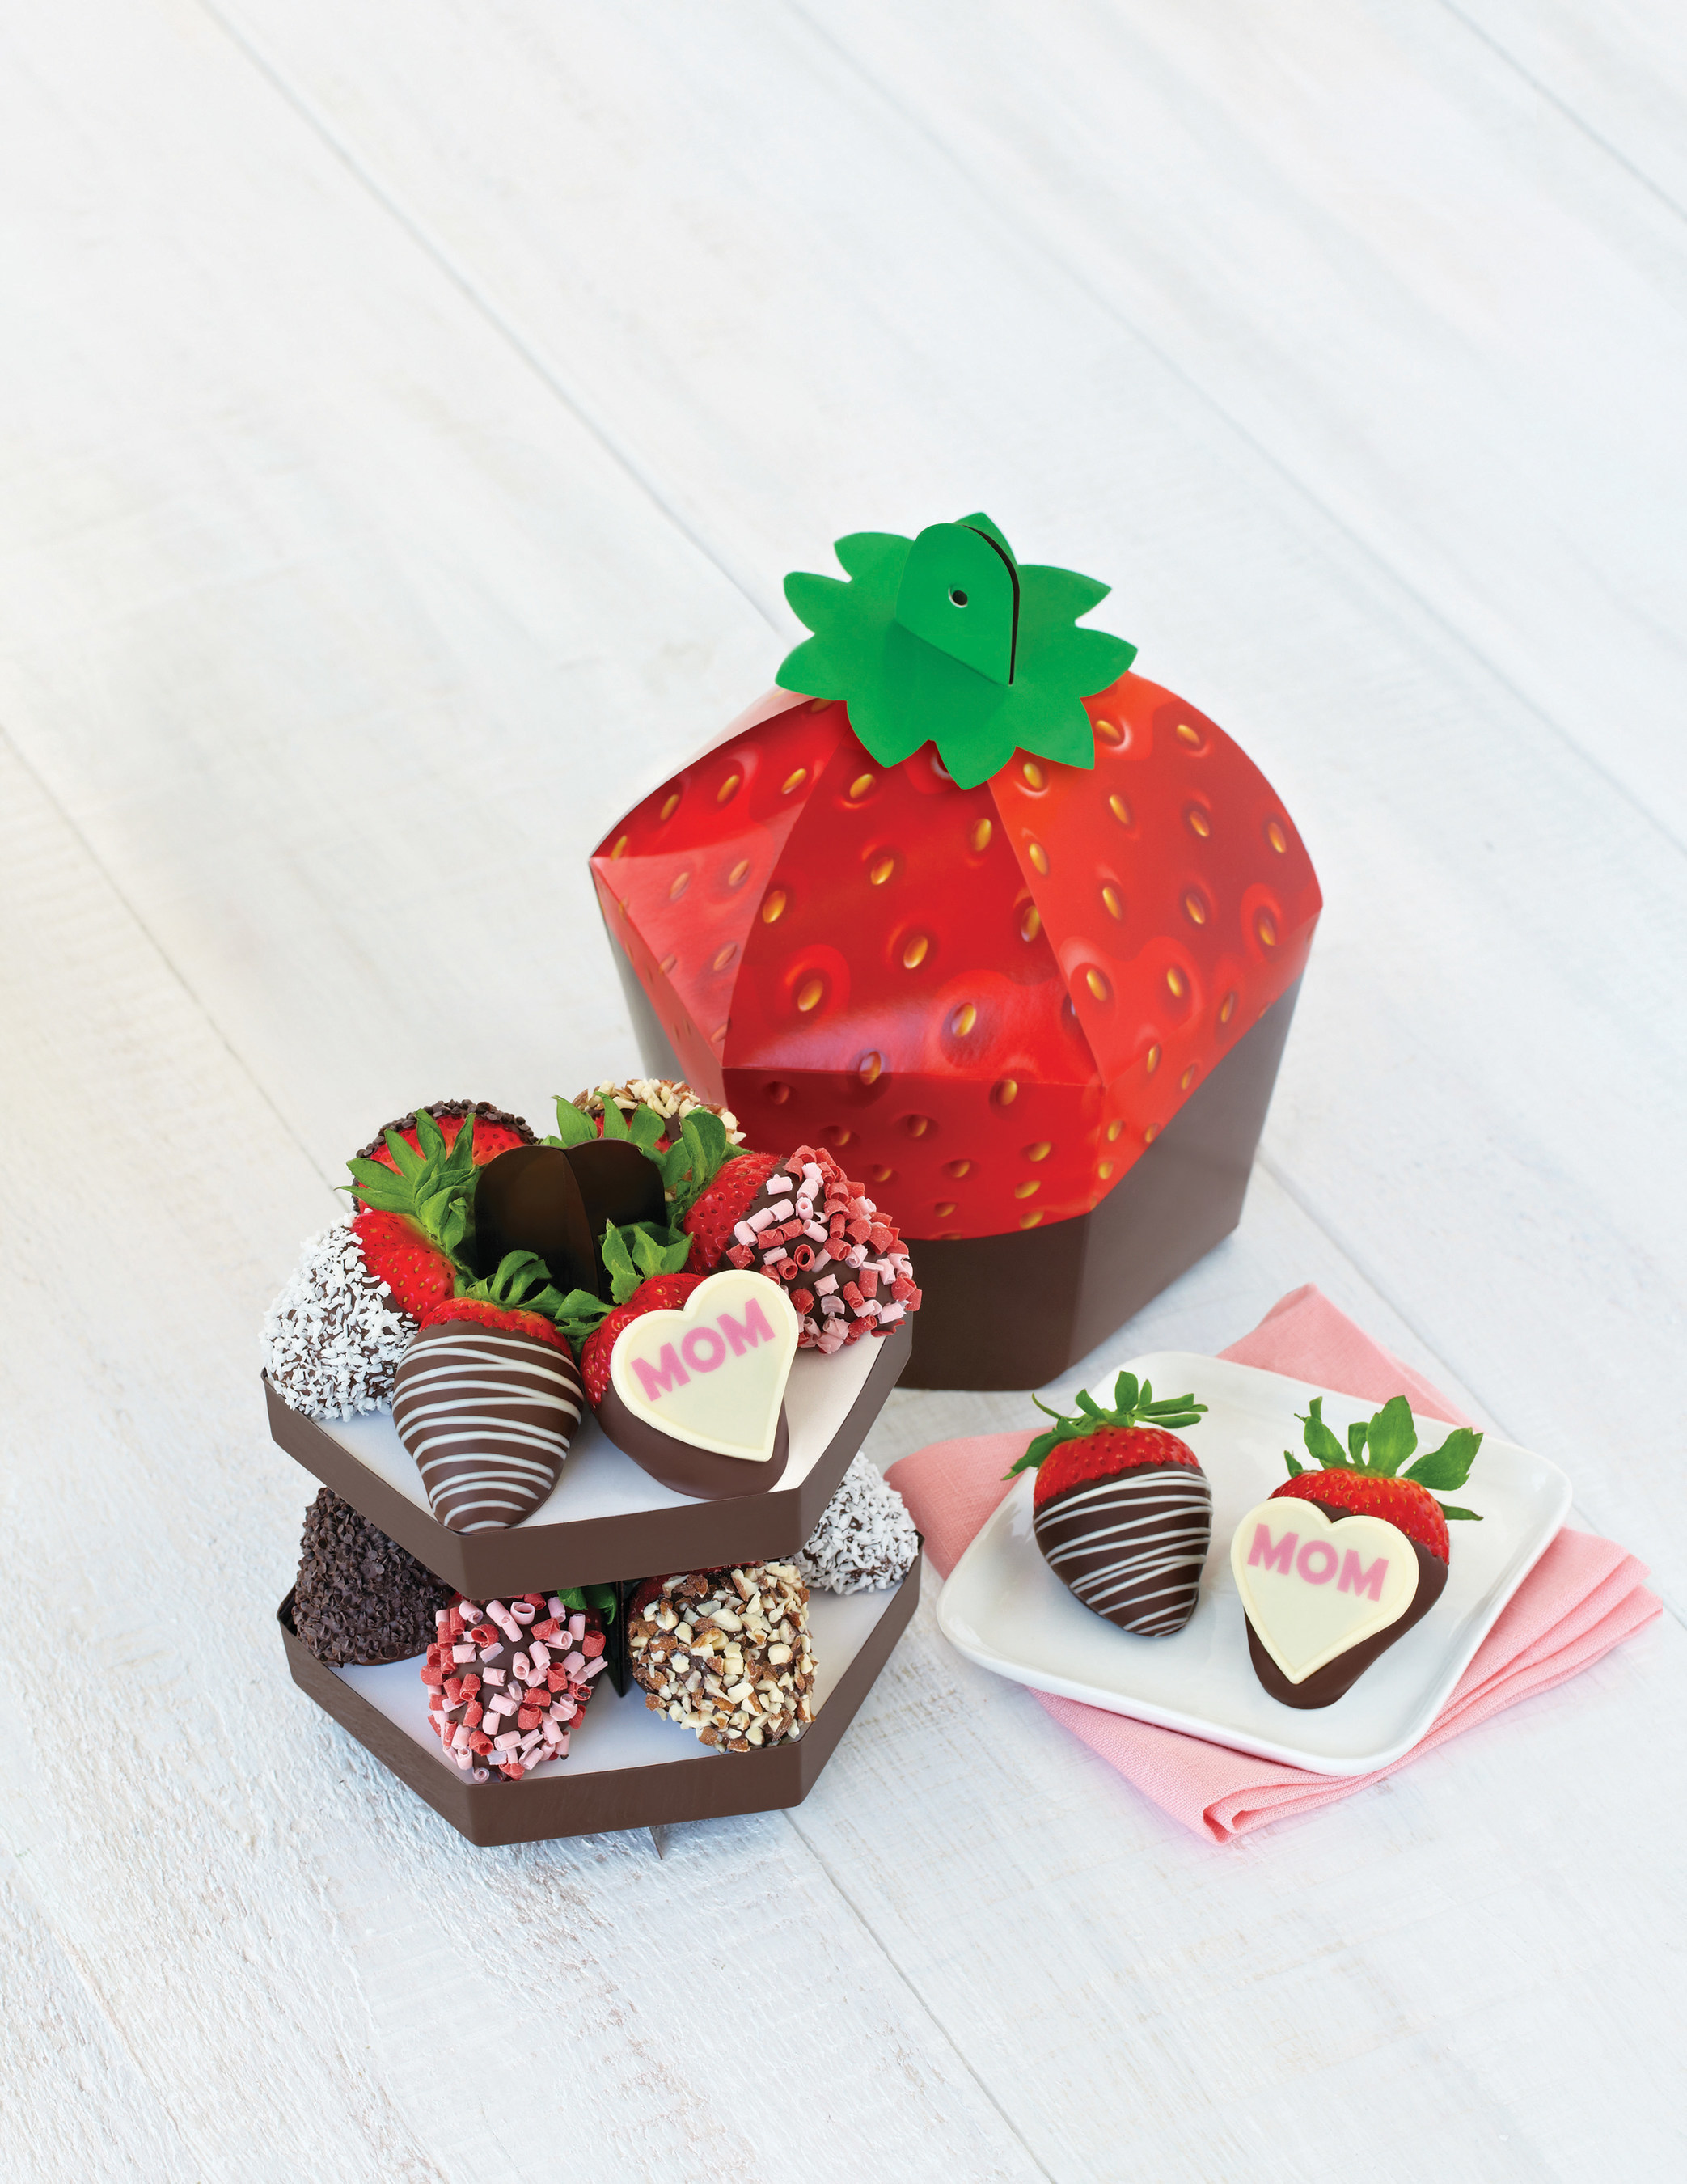 Edible Arrangements(R) Debuts New Mother's Day Signature Berry Box(TM)